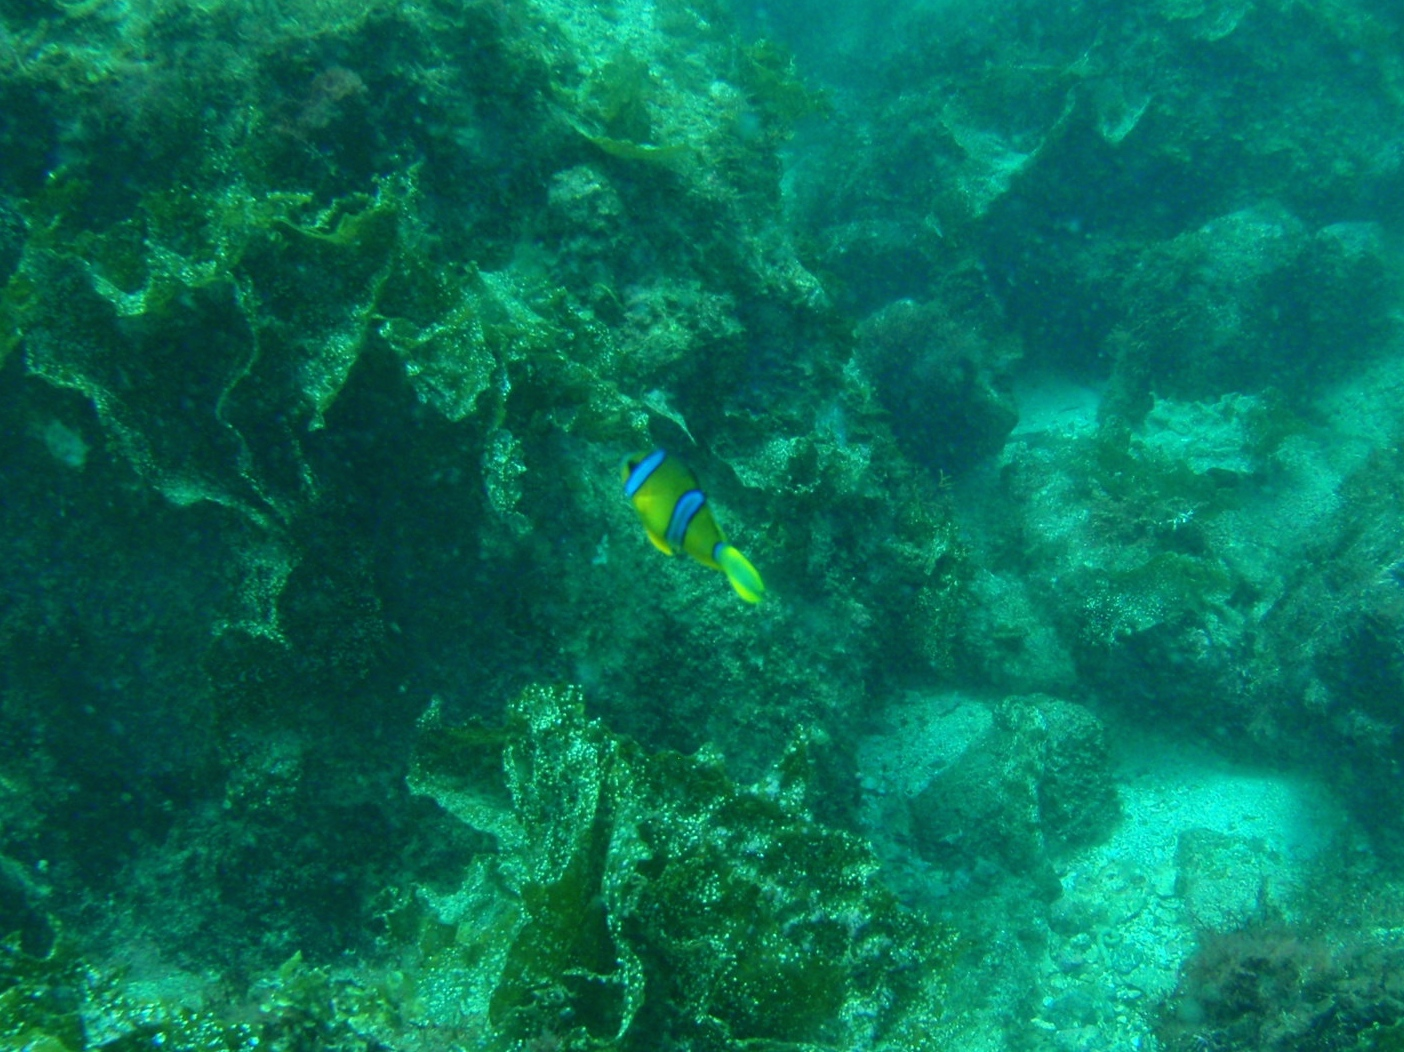 http://www.aquamarine-dive.net/blog/index.html/2014/08/15/P8113223_1.JPG